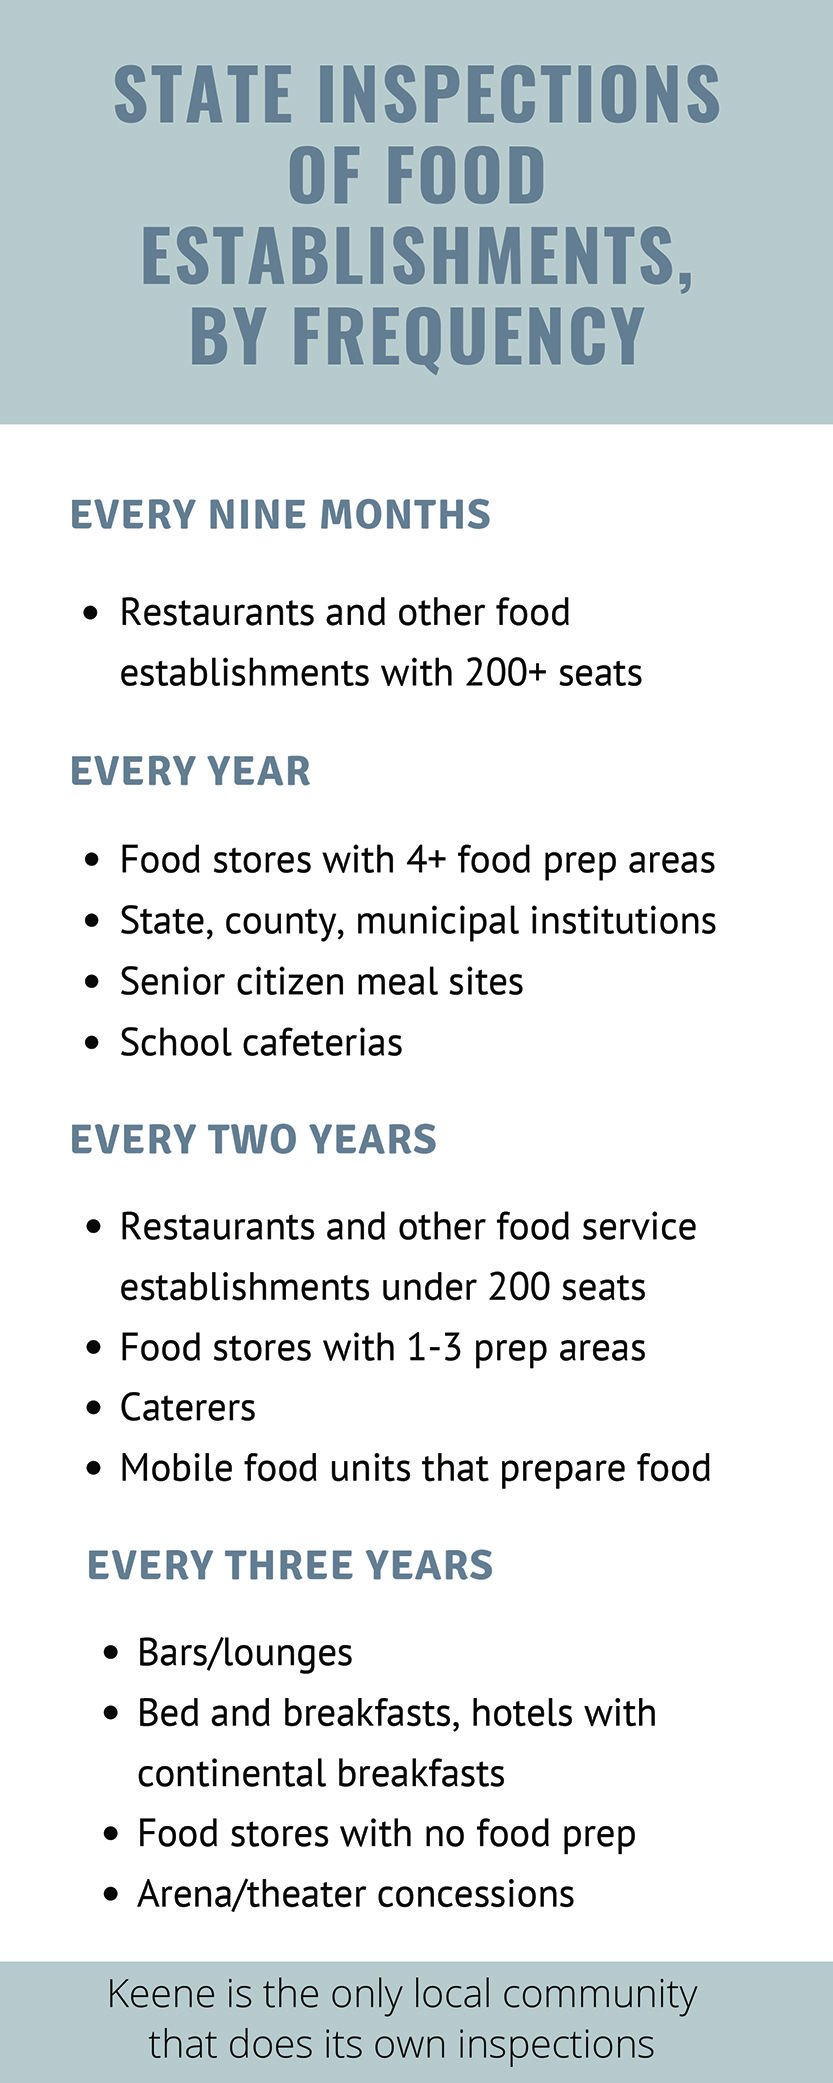 Food inspections by the state